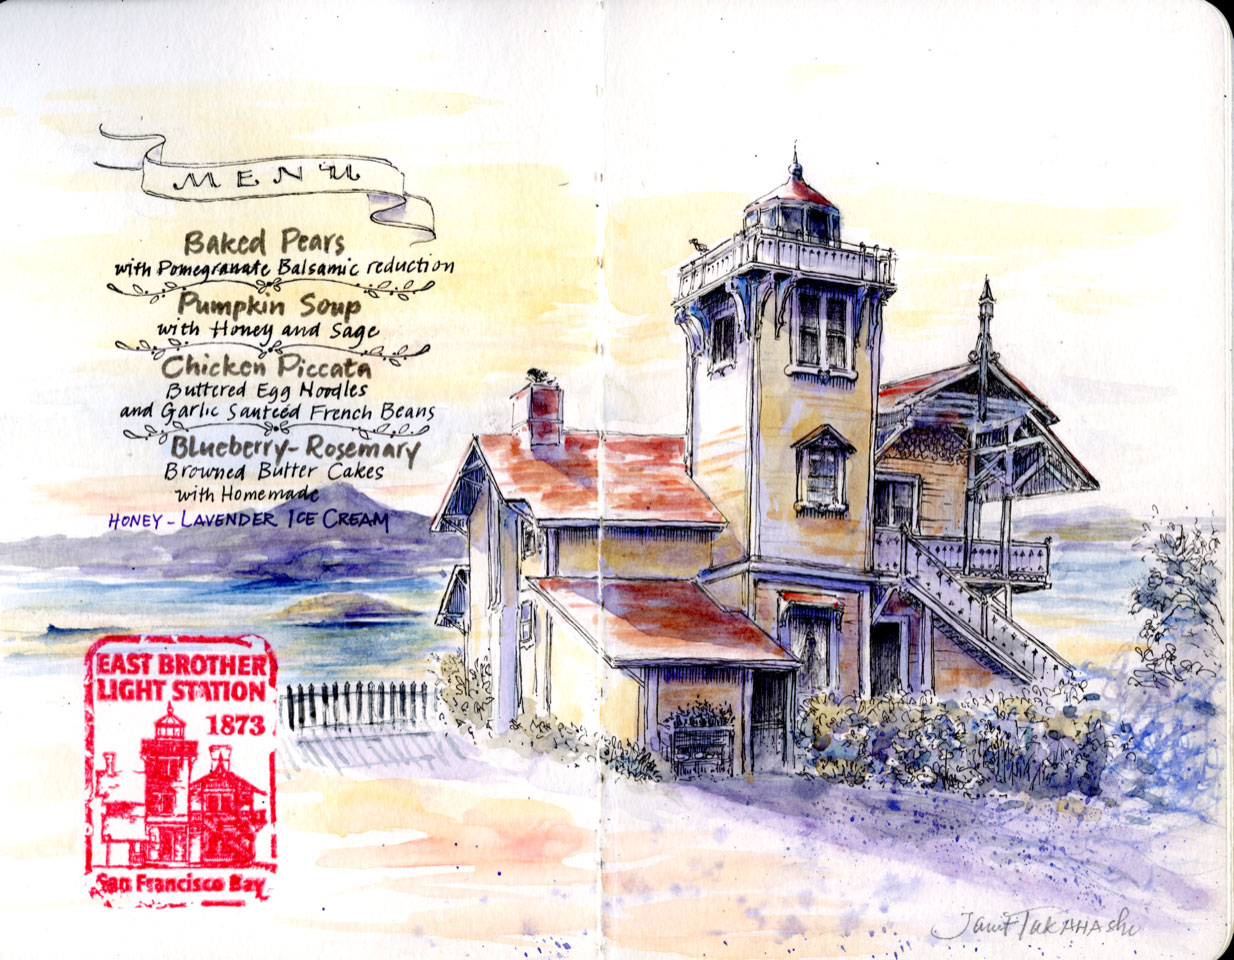 East Brother Lighthouse, San Francisco Bay sketch by Janet Takahashi